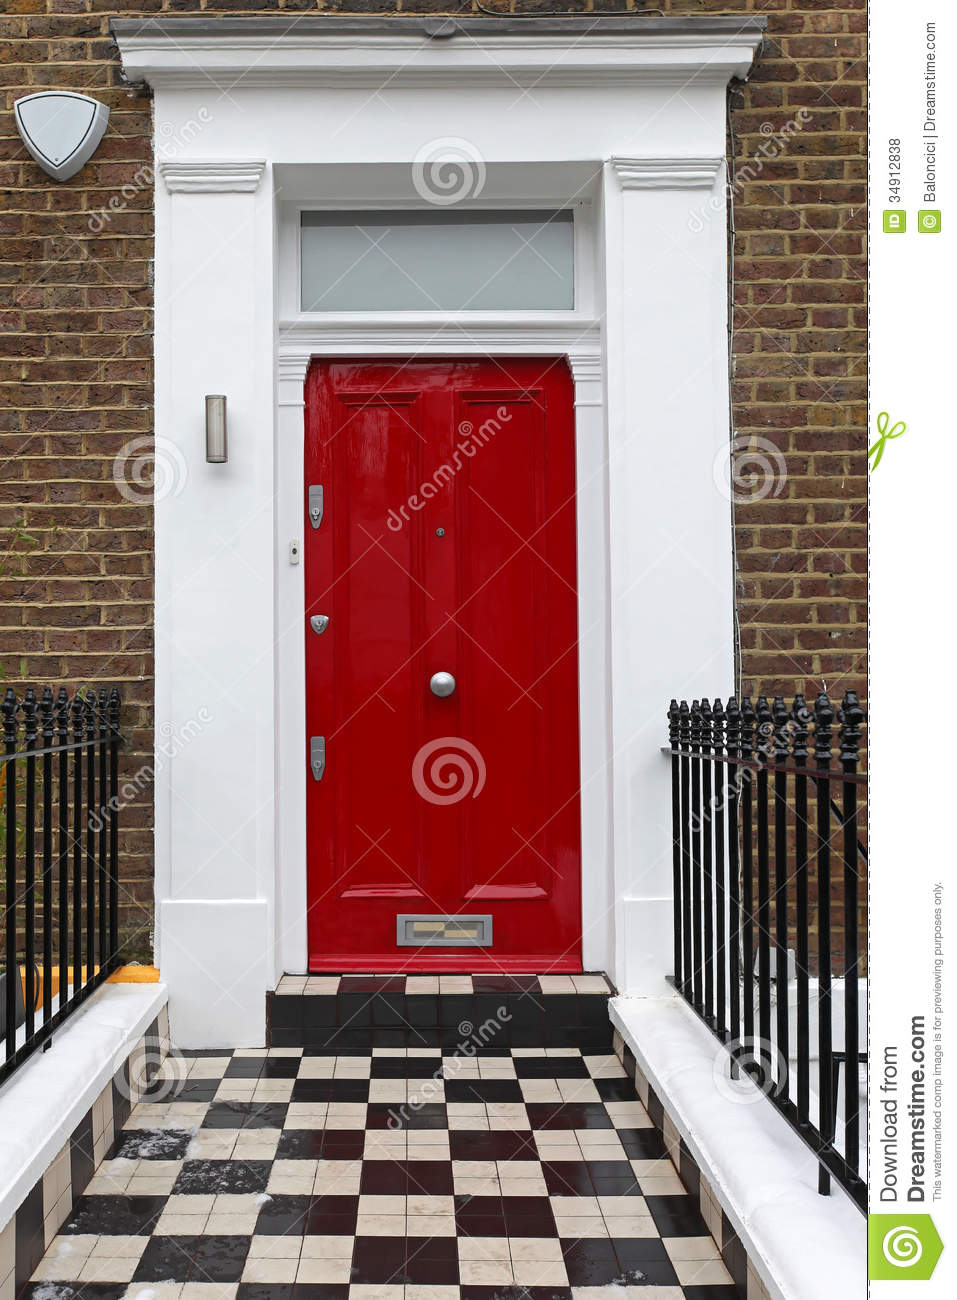 Red door royalty free stock photos image 34912838